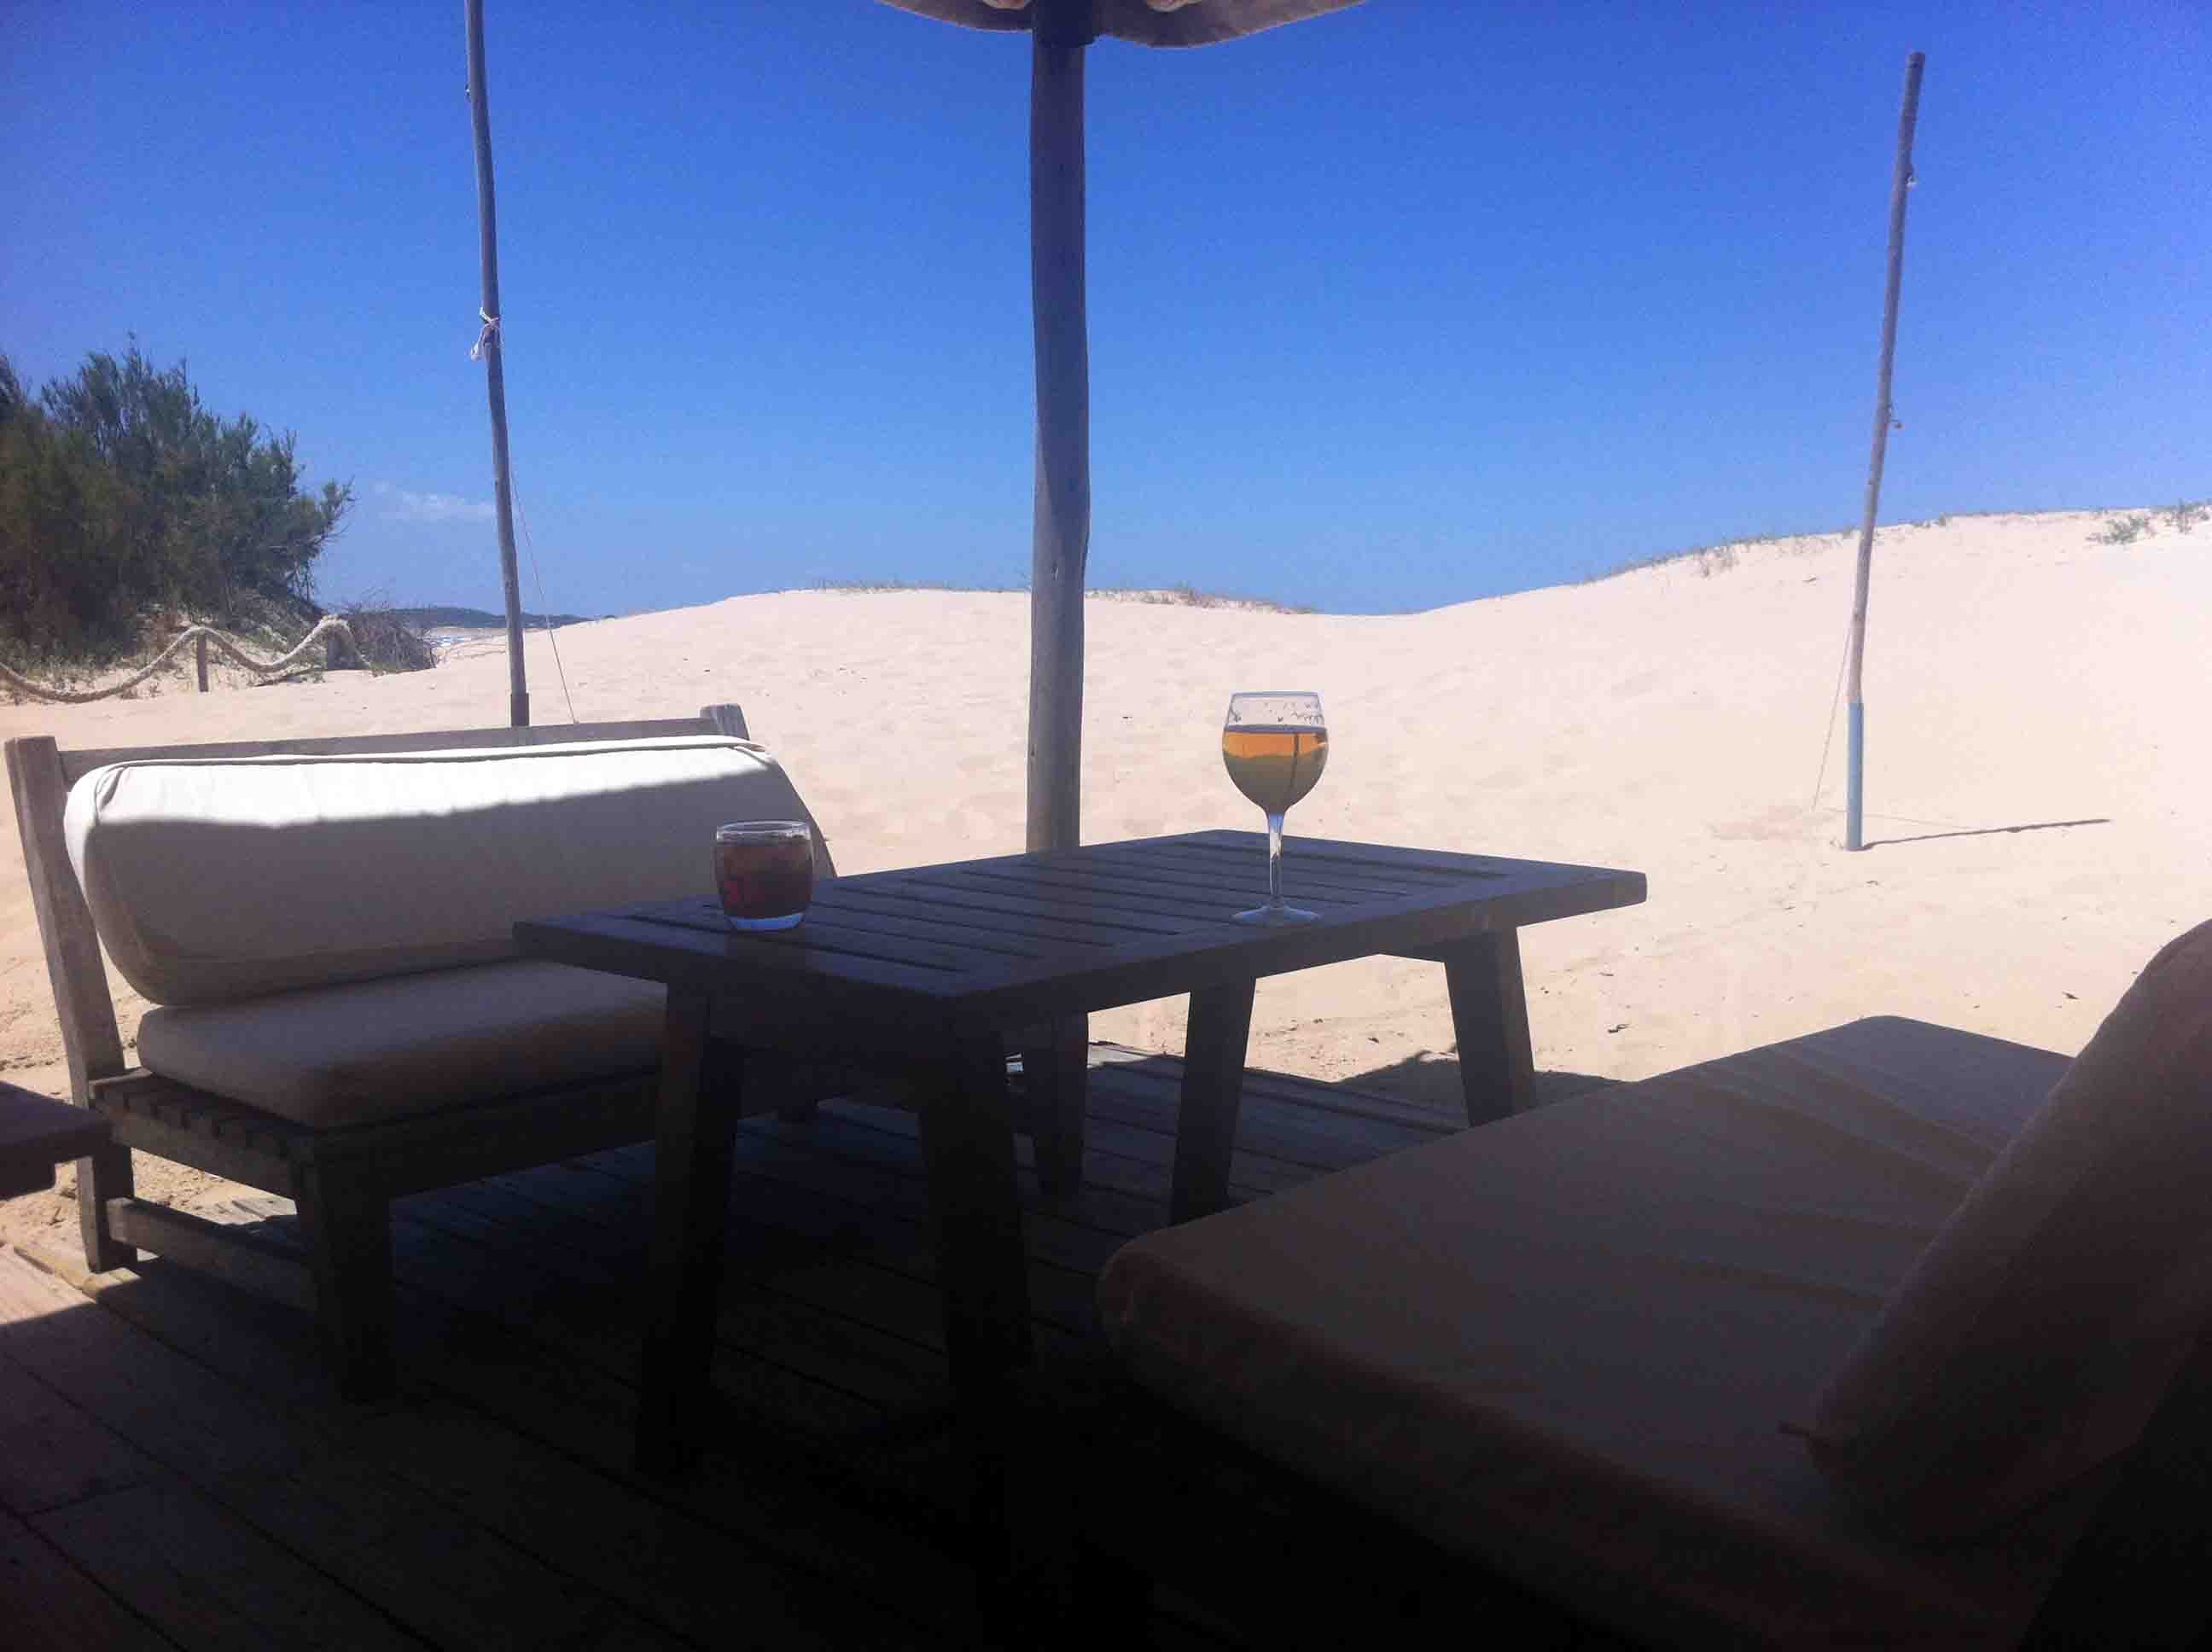 Day at La Barra, Bikini Beach & Jose Ignacio in Uruguay